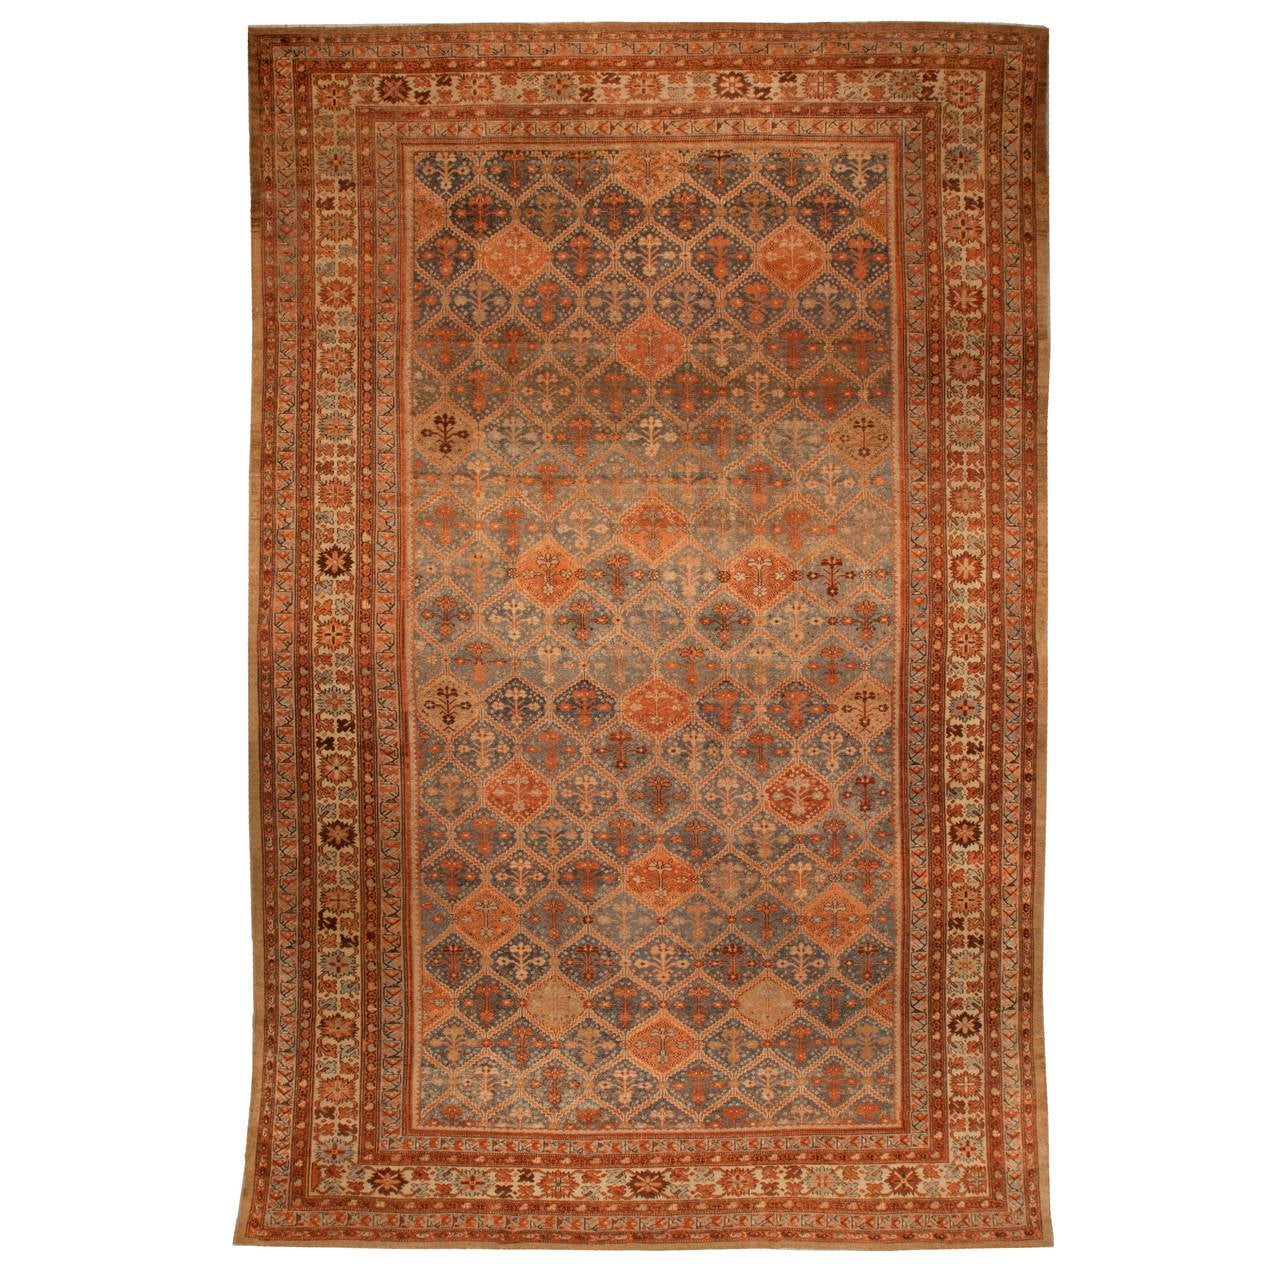 Persian Rugs For Sale: Antique Persian Malayer Runner Rug For Sale At 1stdibs